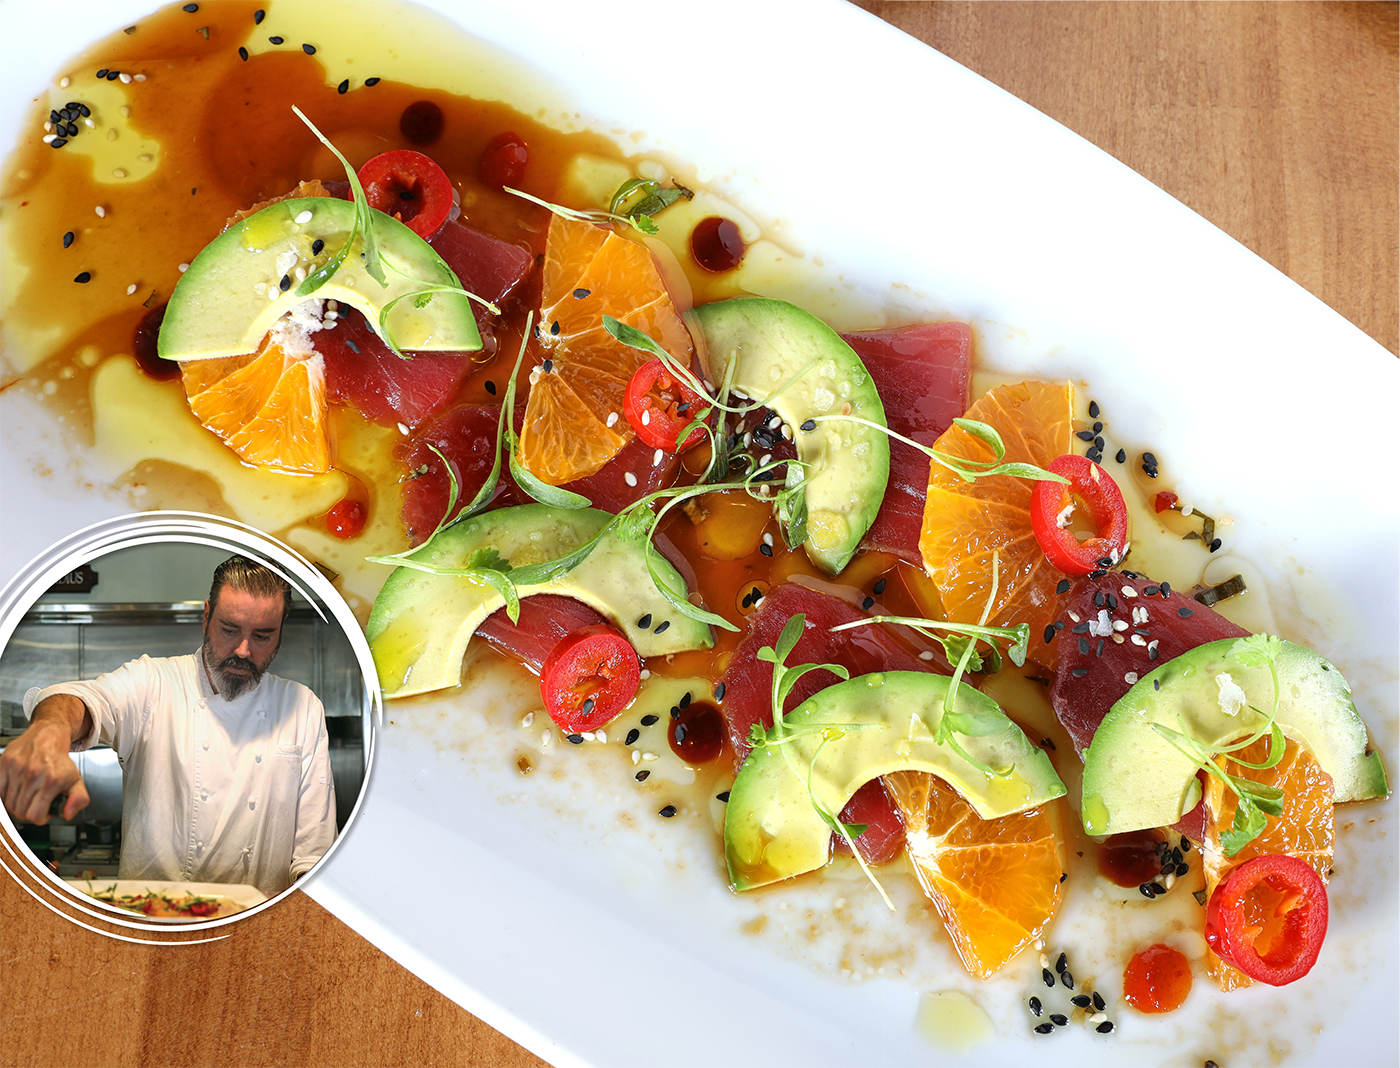 Tuna Crudo from Paul Arias, Executive Chef at The Fishery